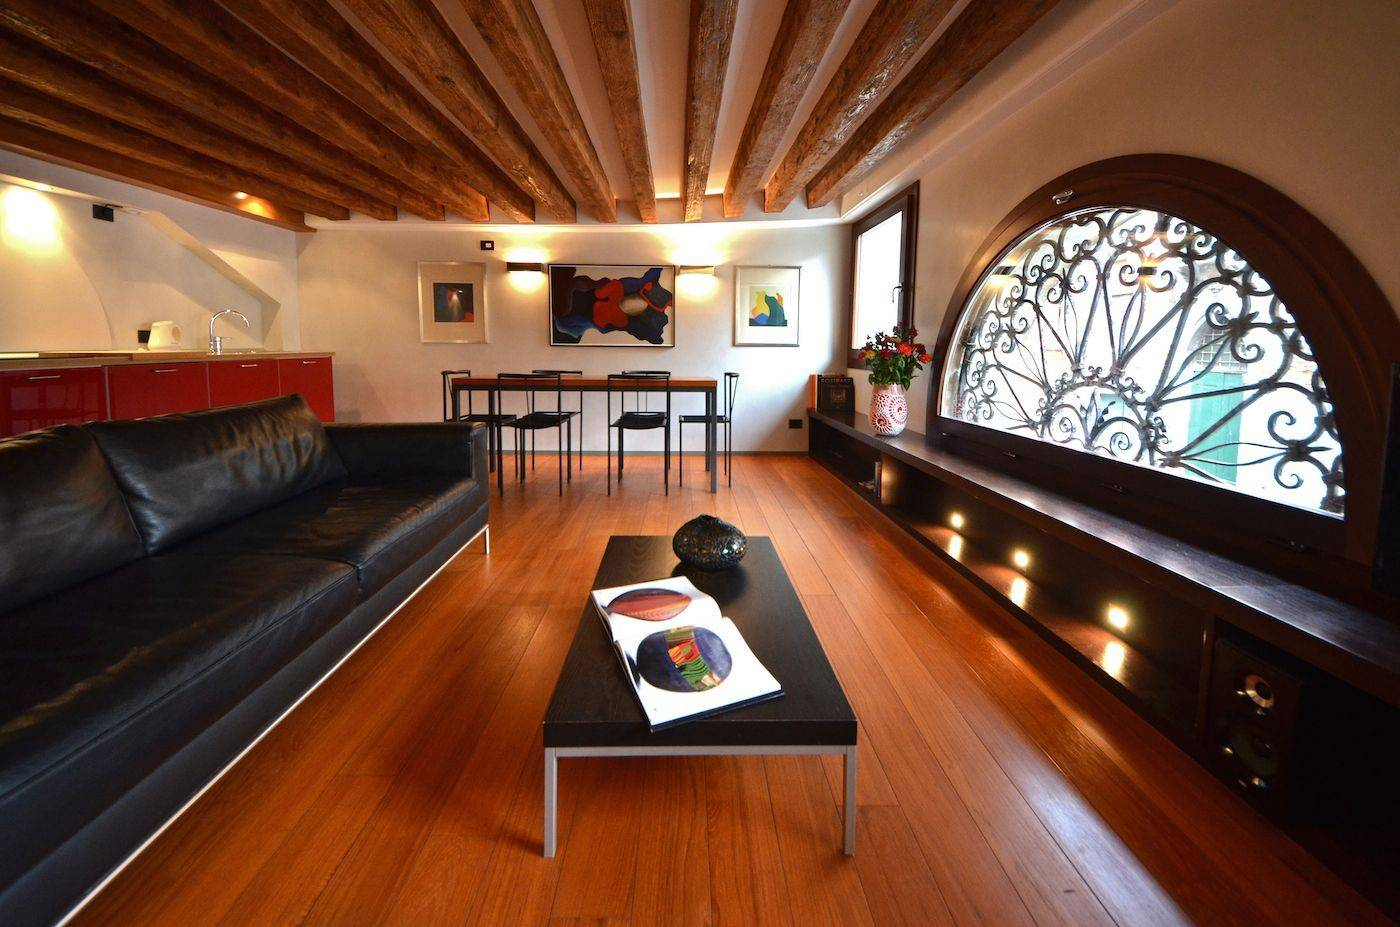 Fenice apartment living room with canal view